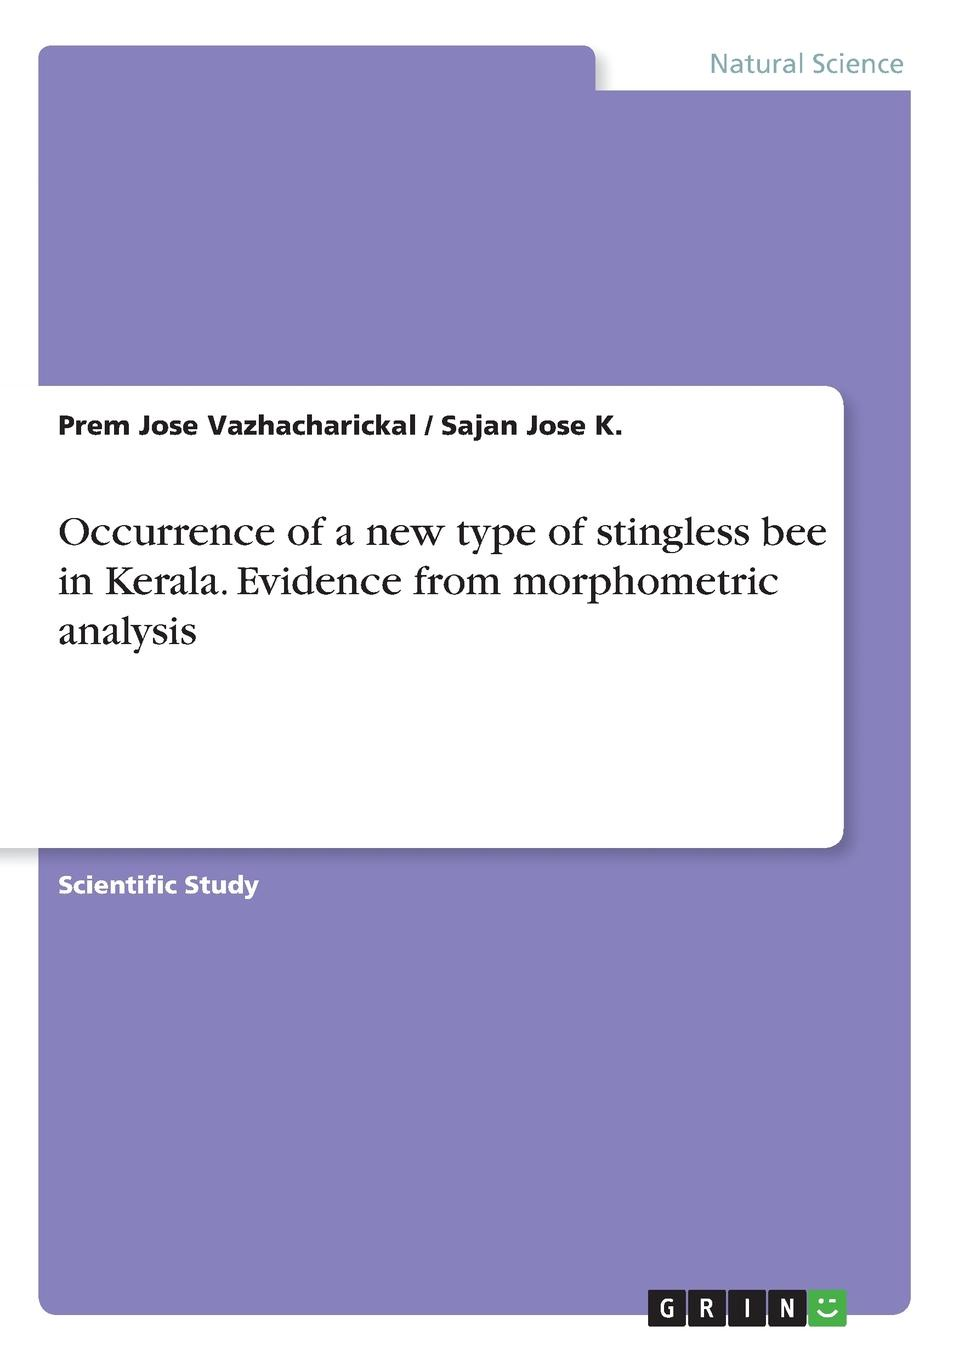 Prem Jose Vazhacharickal, Sajan Jose K. Occurrence of a new type of stingless bee in Kerala. Evidence from morphometric analysis jiby john mathew prem jose vazhacharickal sajeshkumar n k the honey apple and its phytochemical analysis